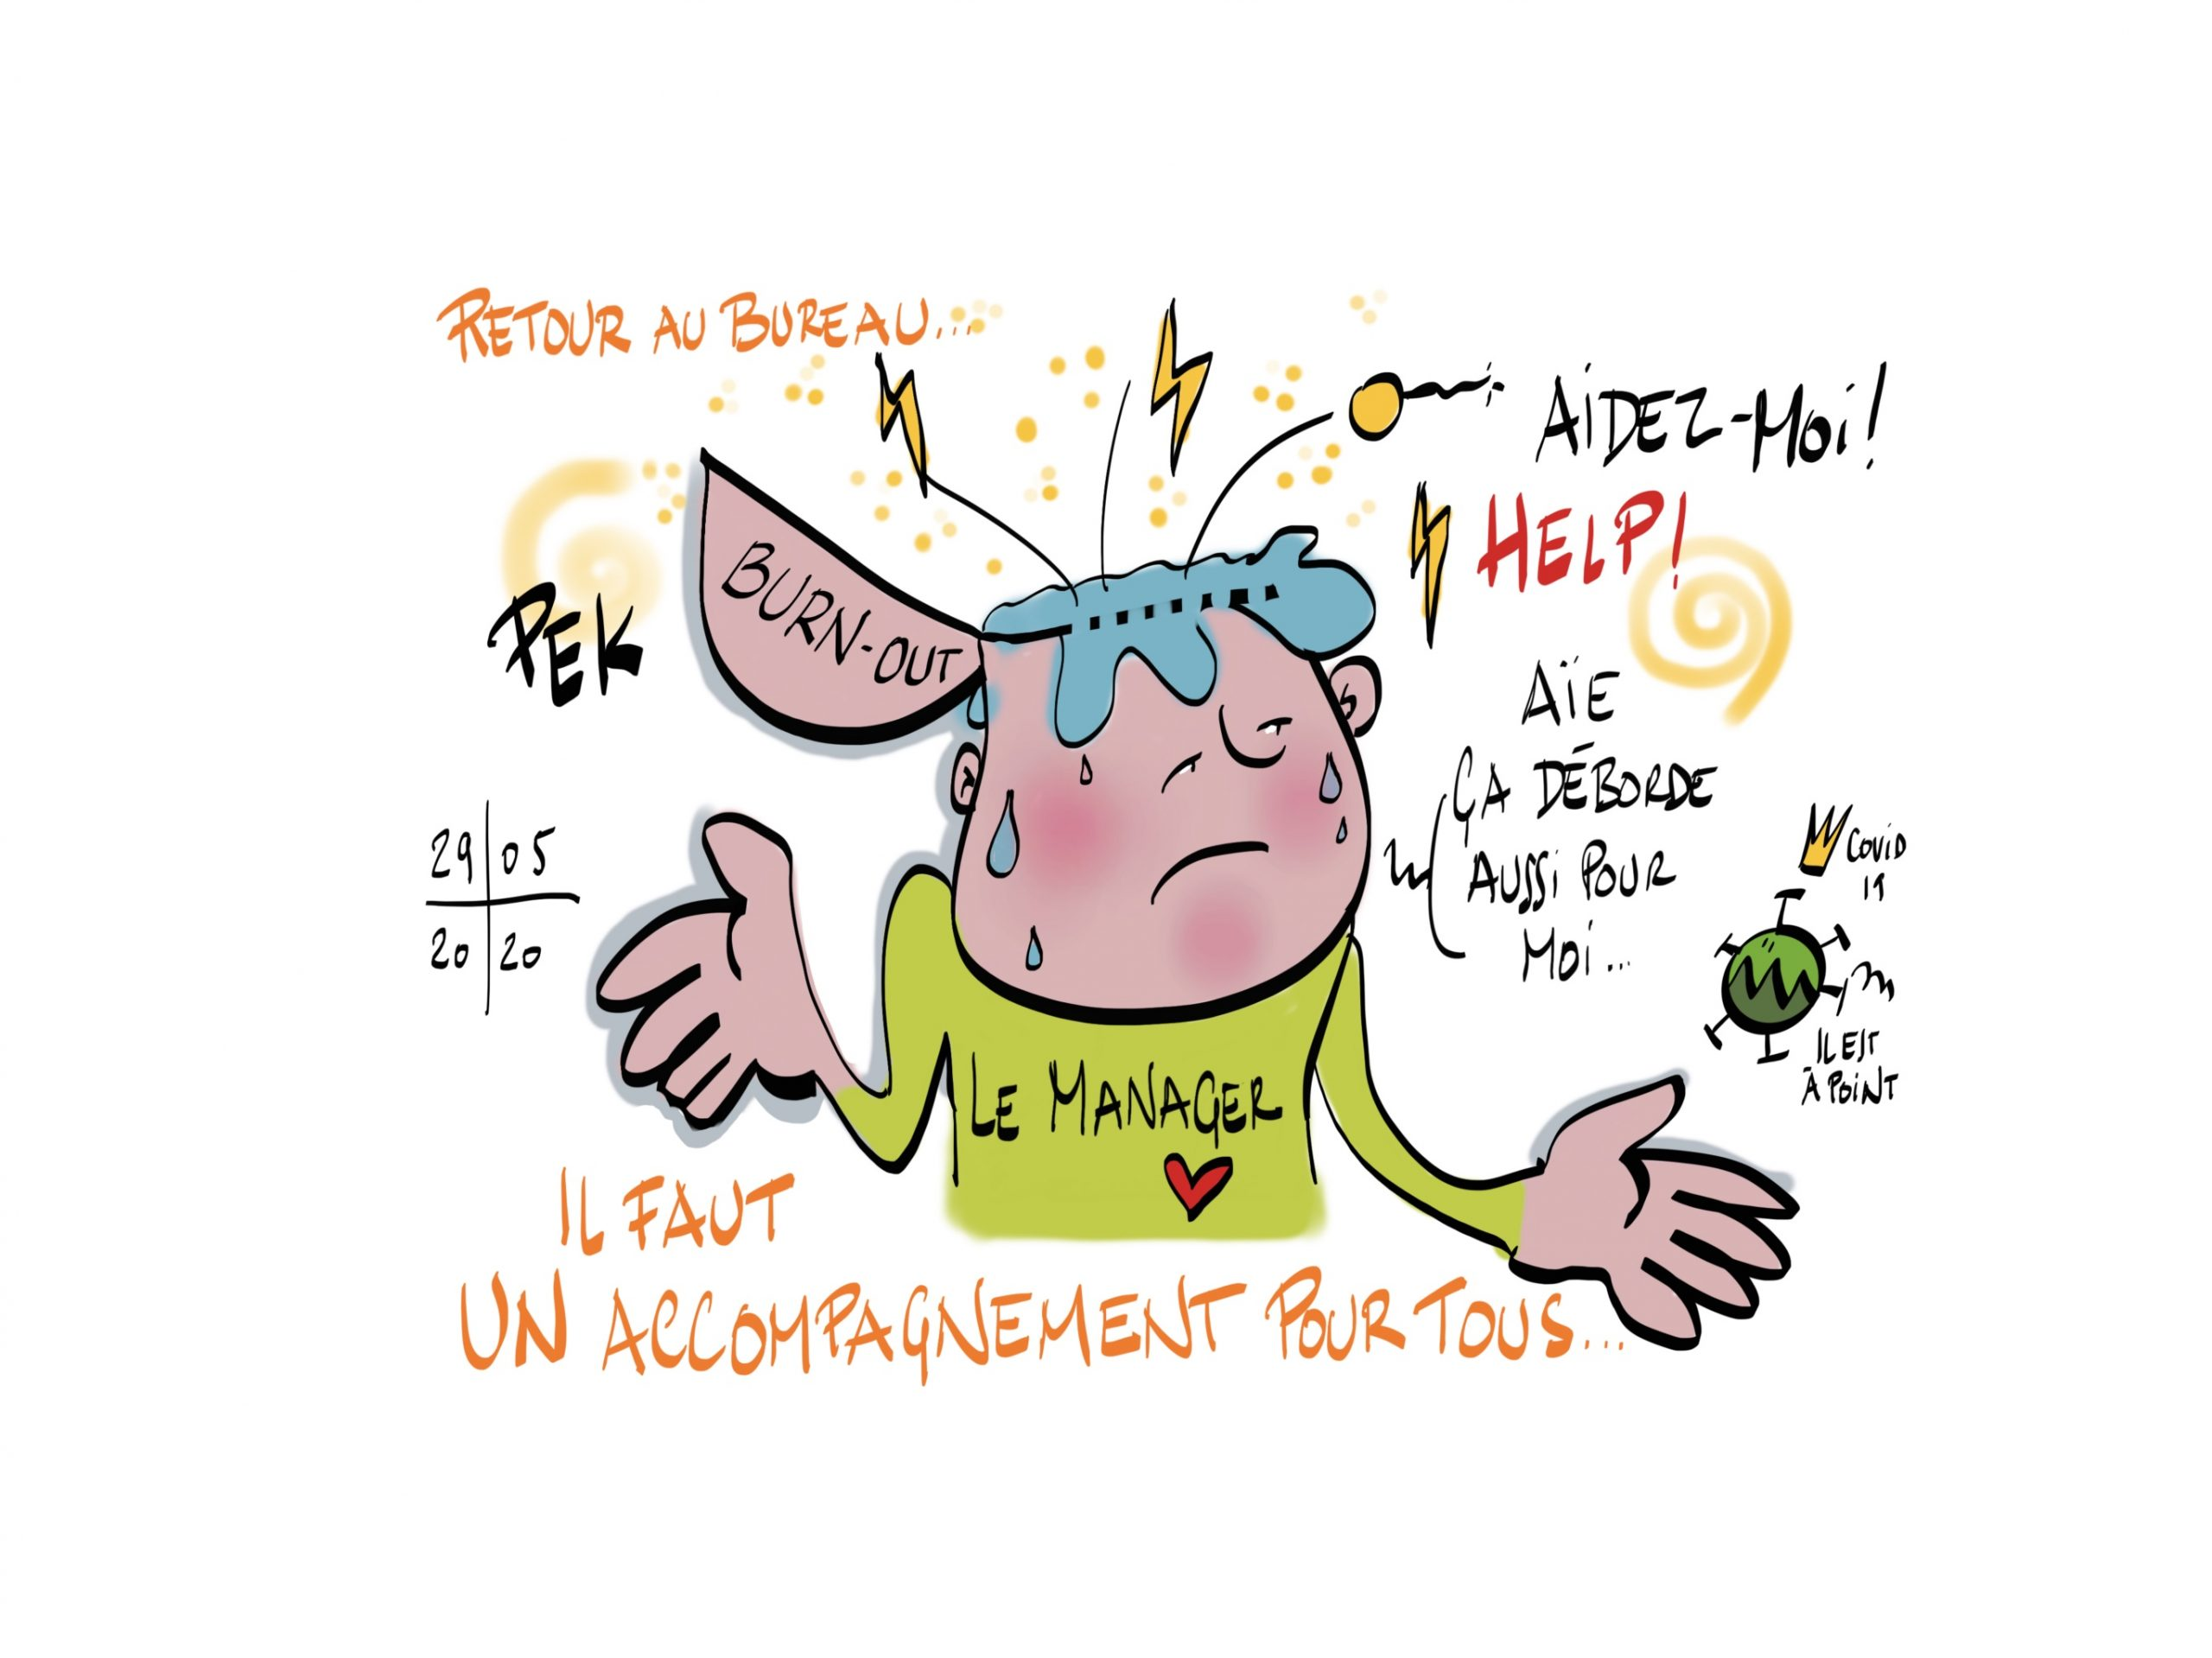 Managers ménagez-vous ! Attention burn-out, article et coaching de Sylvaine Messica, illustration de PEK (crédit)